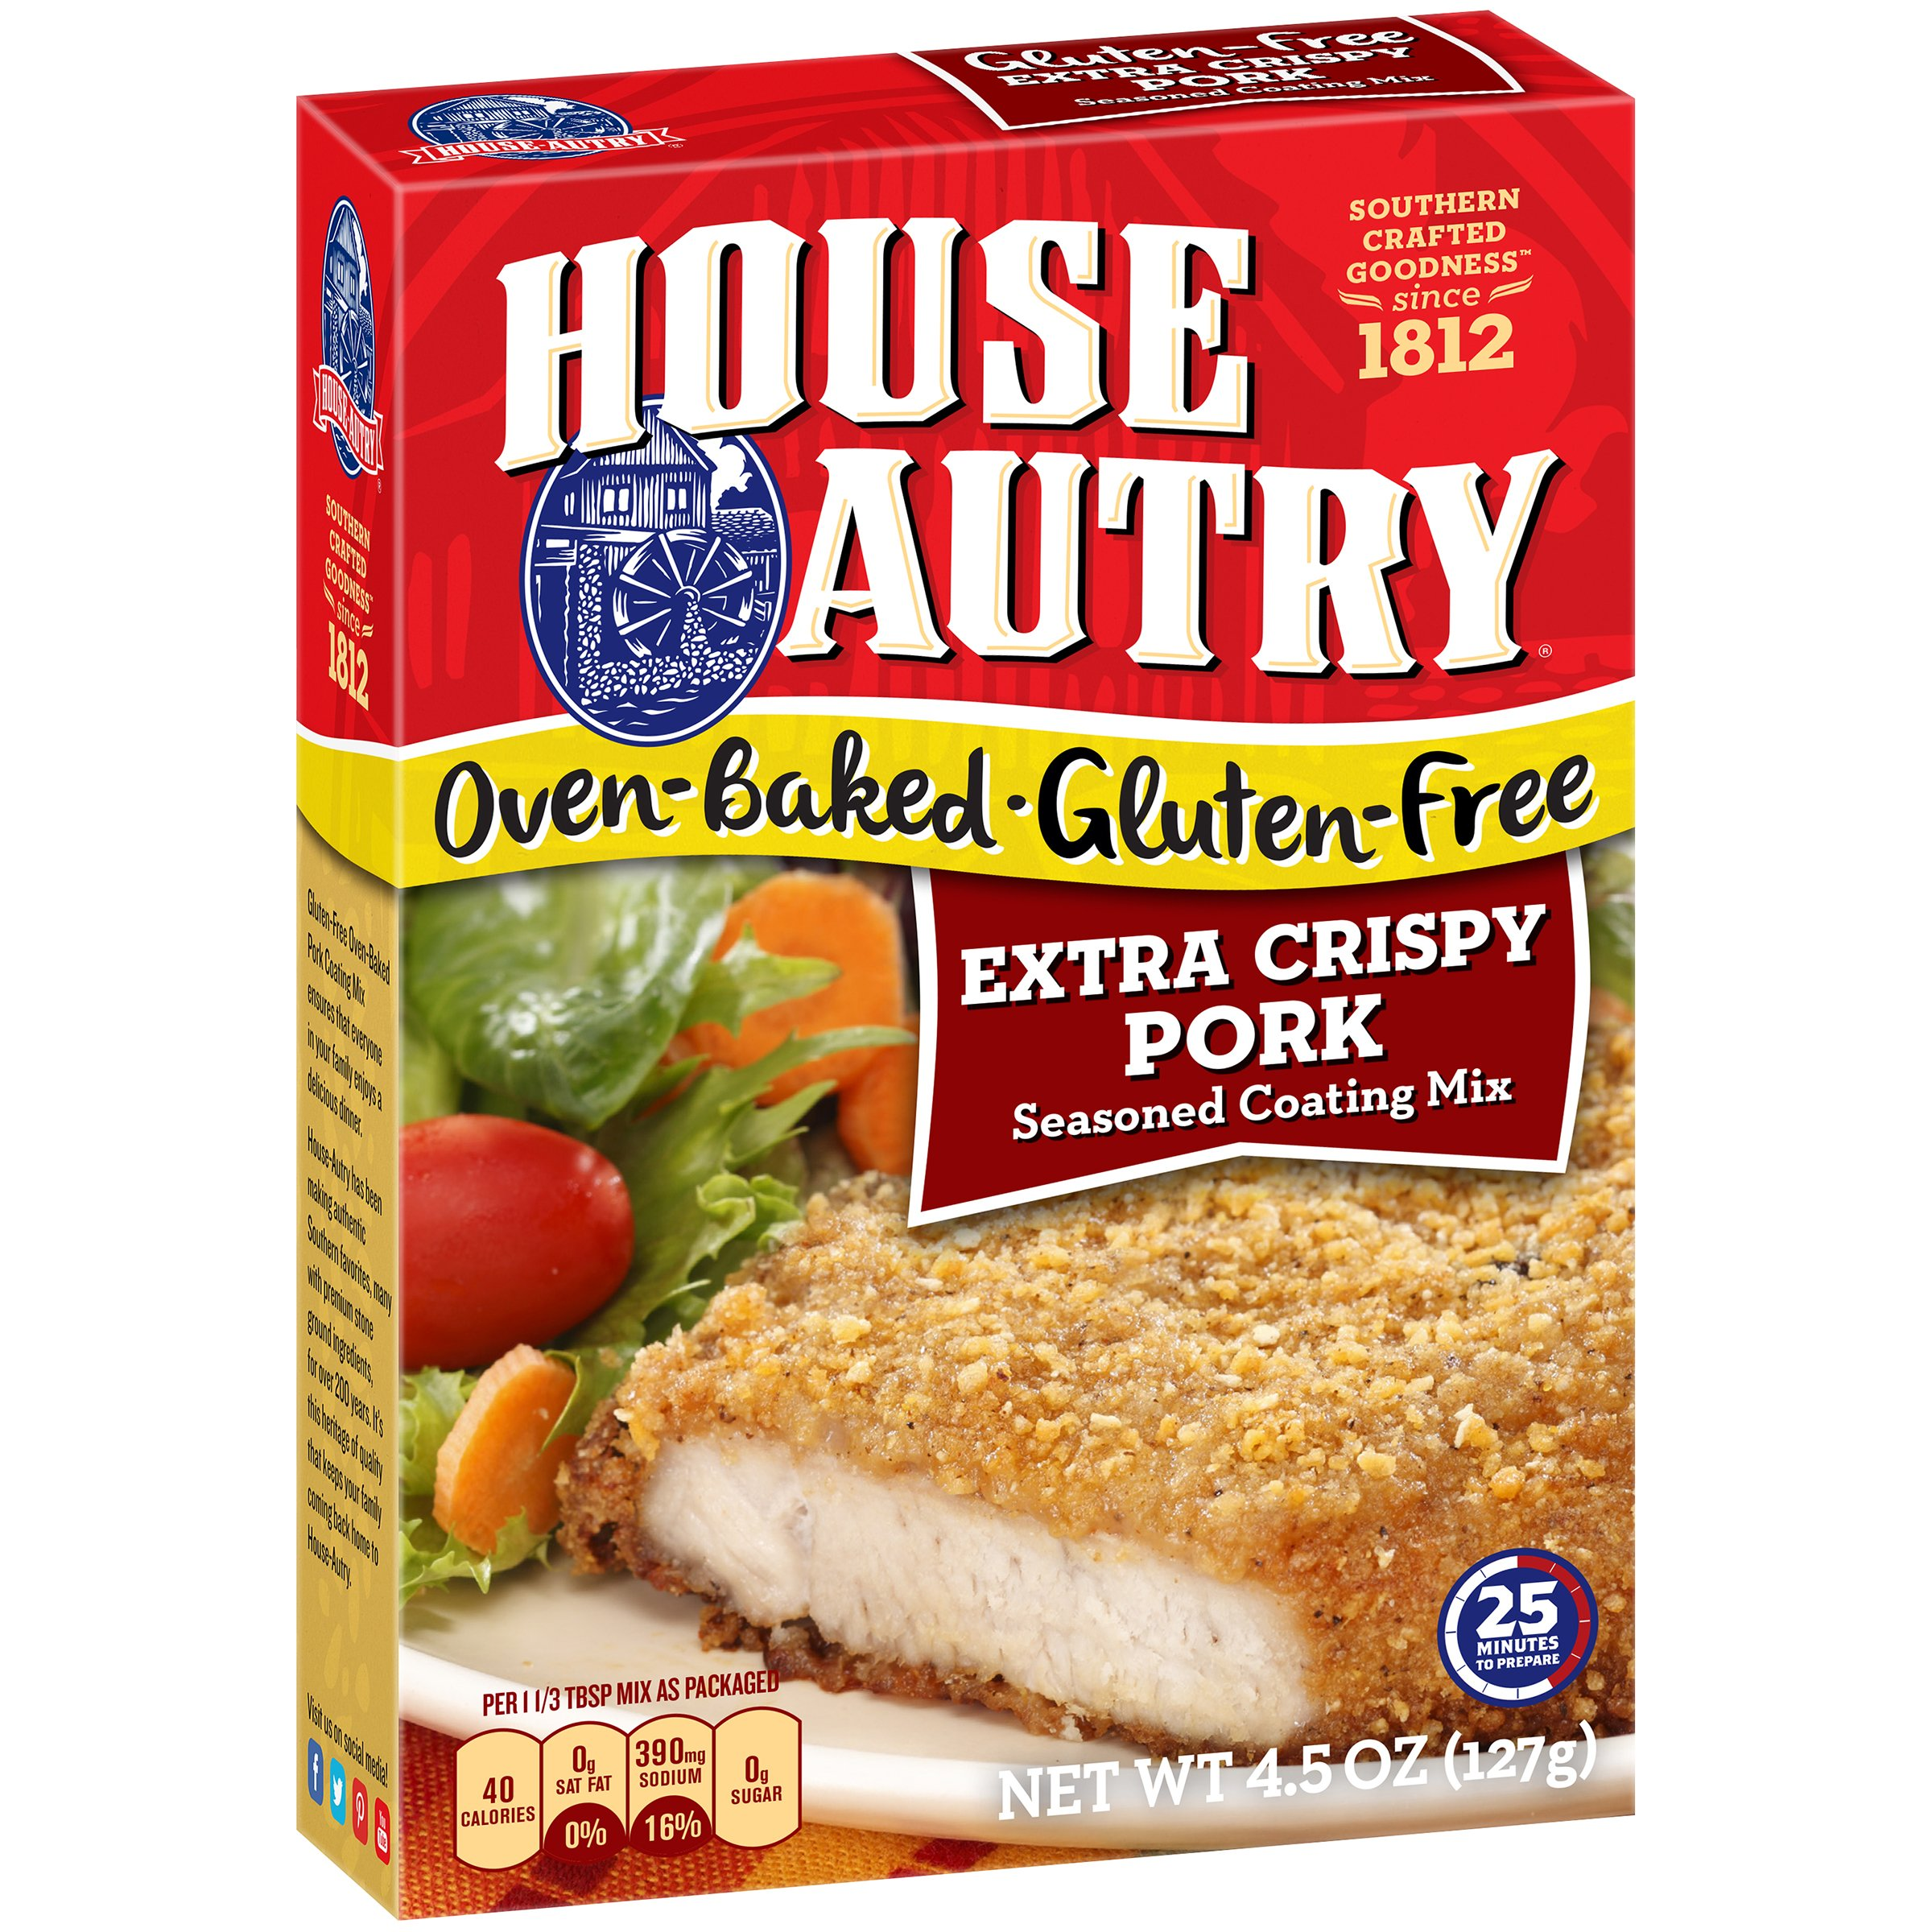 House-Autry Gluten-Free Extra Crispy Pork Breader (8 PACK) by House-Autry (Image #1)